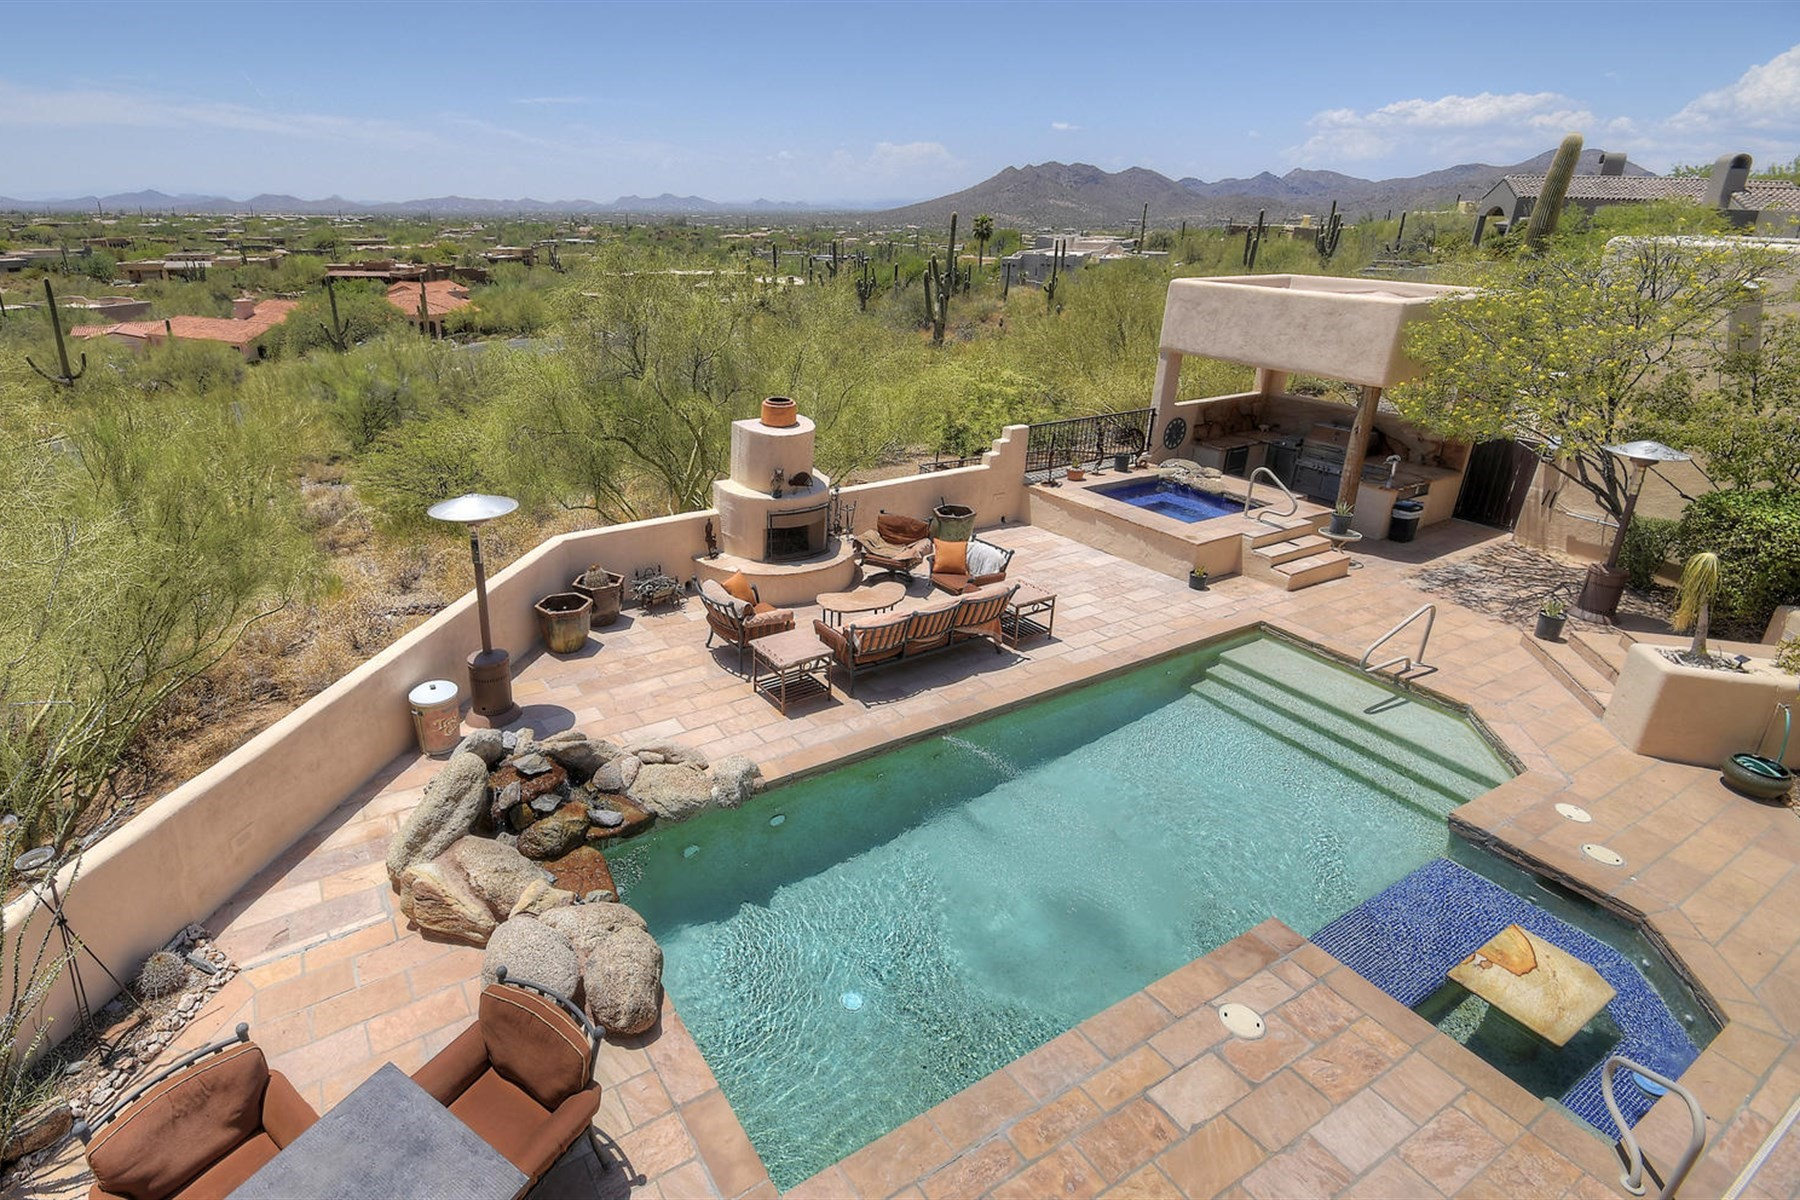 Single Family Home for Sale at Beautiful View Lot in Carefree Foothills 35037 N El Sendro Rd Carefree, Arizona, 85377 United States